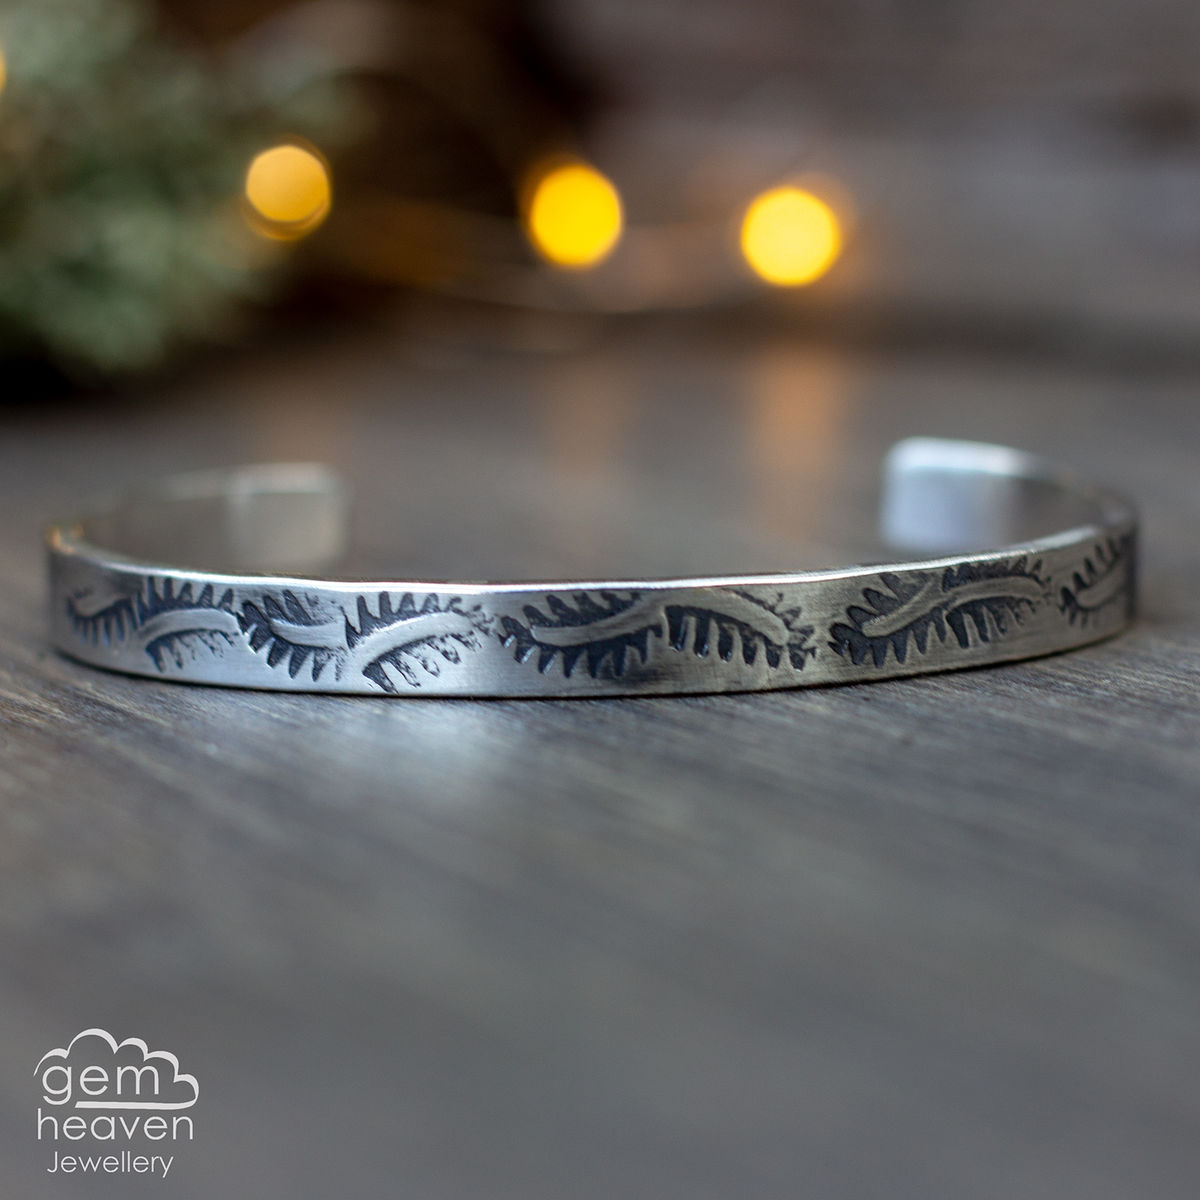 Catcher Cuffs - product images  of